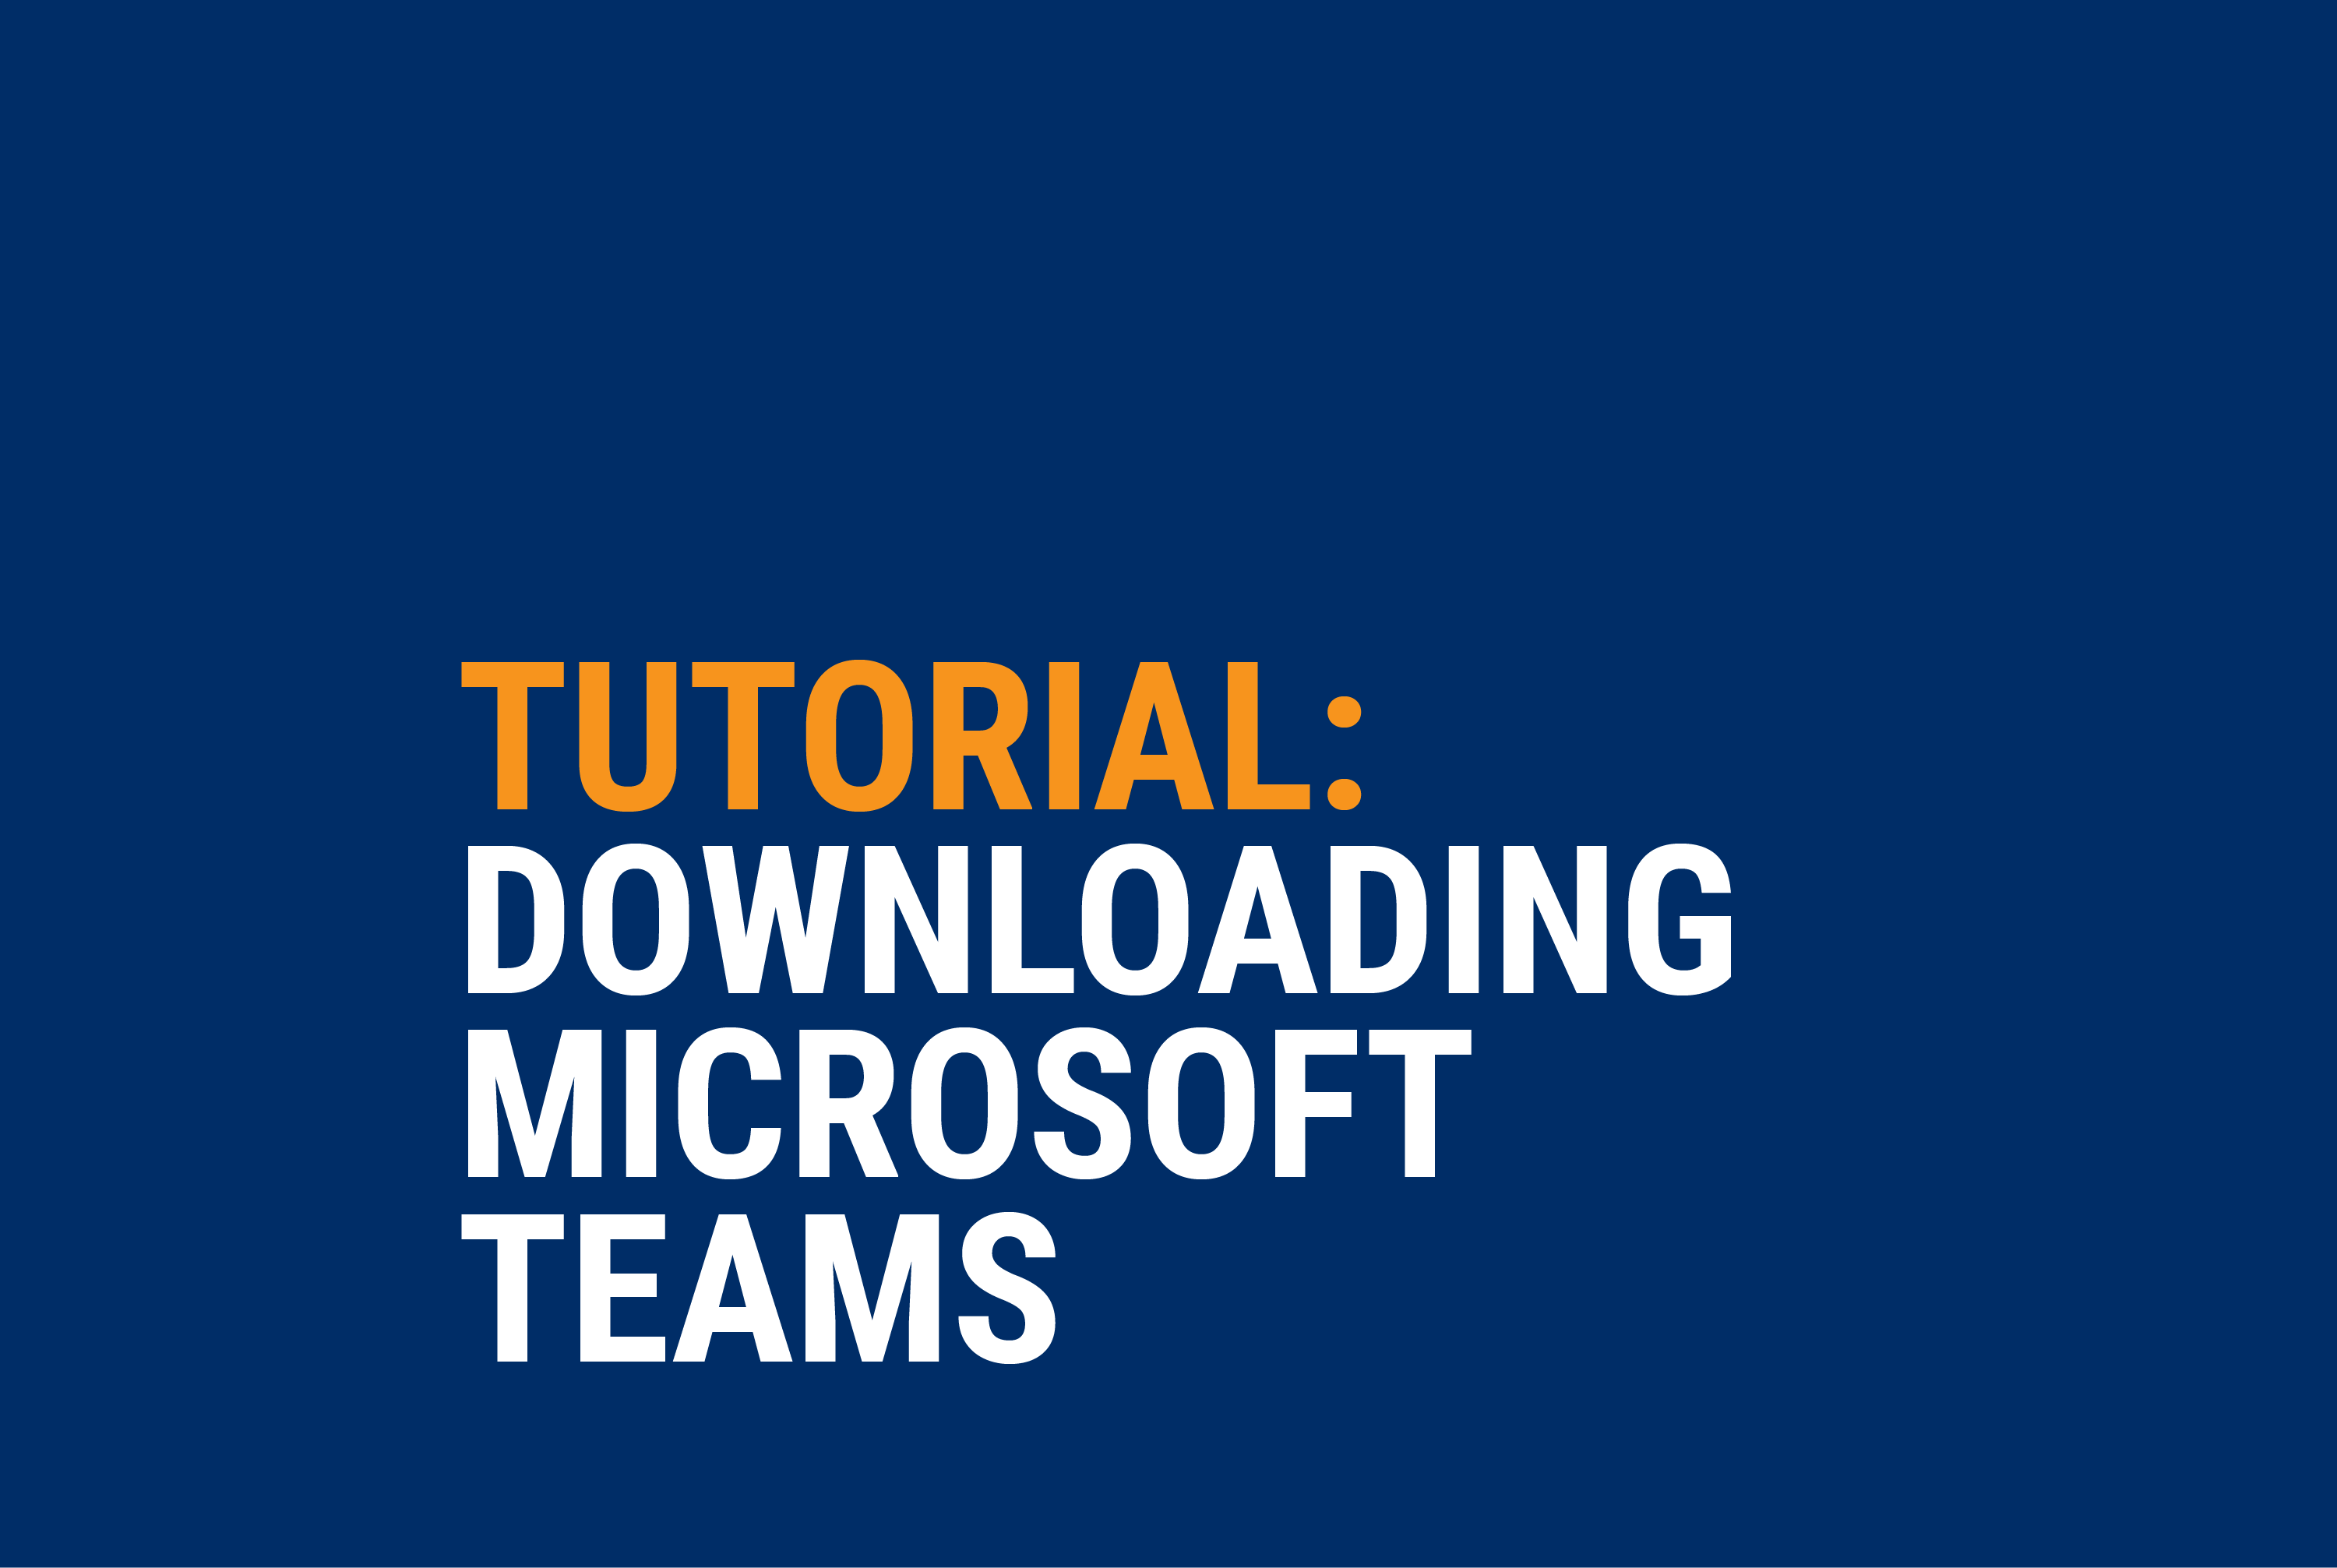 Tutorial: Downloading Microsoft Teams